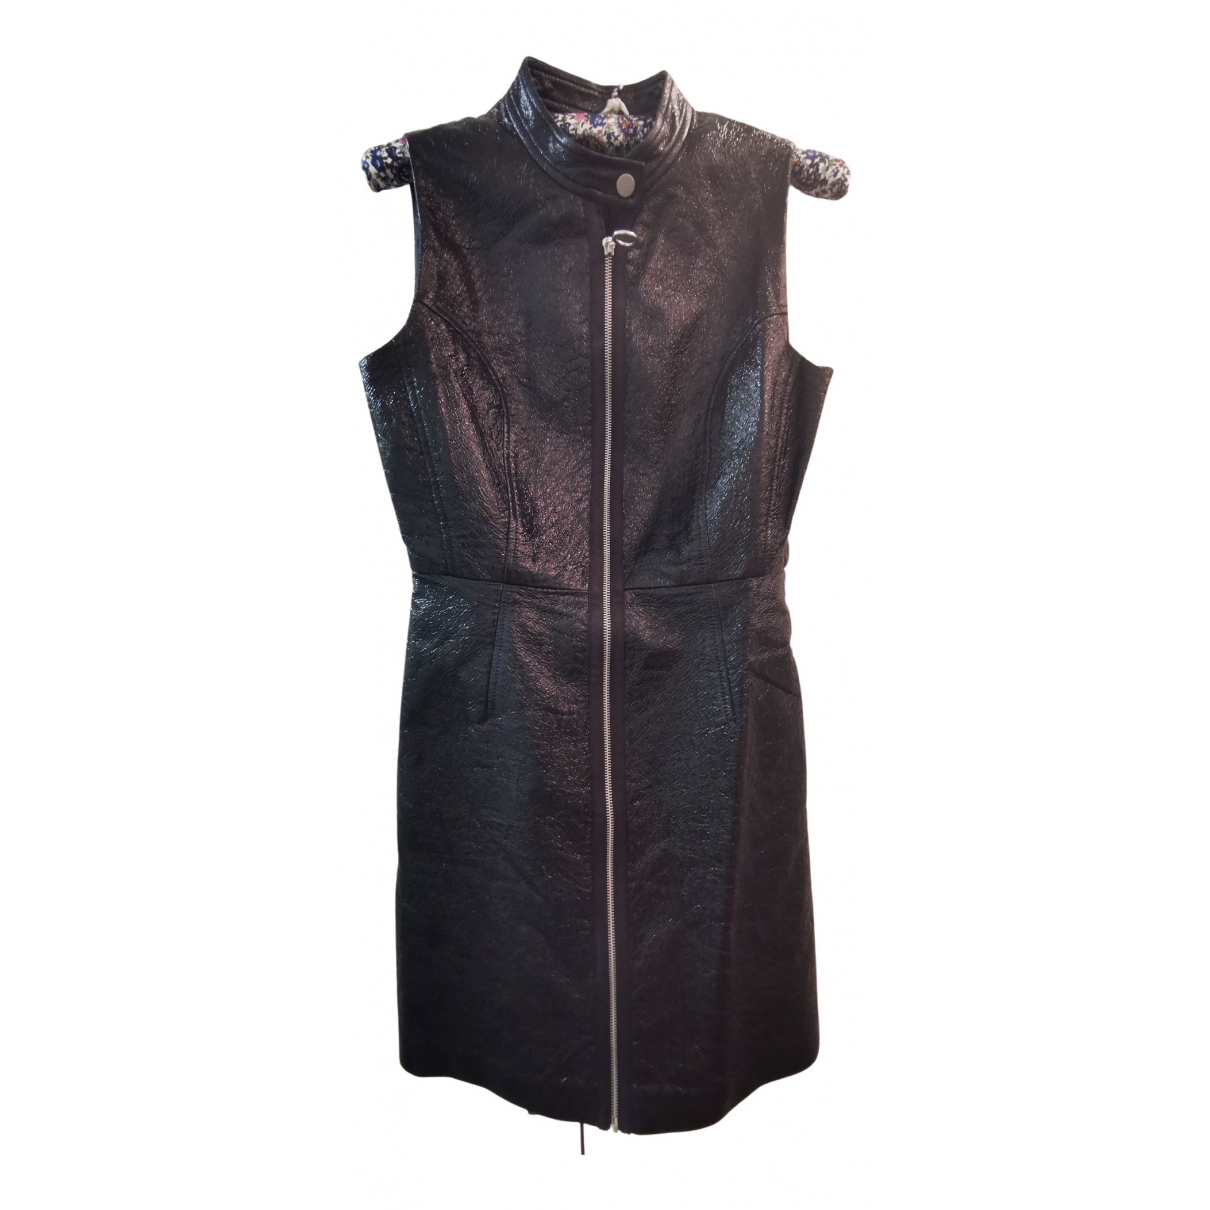 Marc Jacobs N Black dress for Women M International